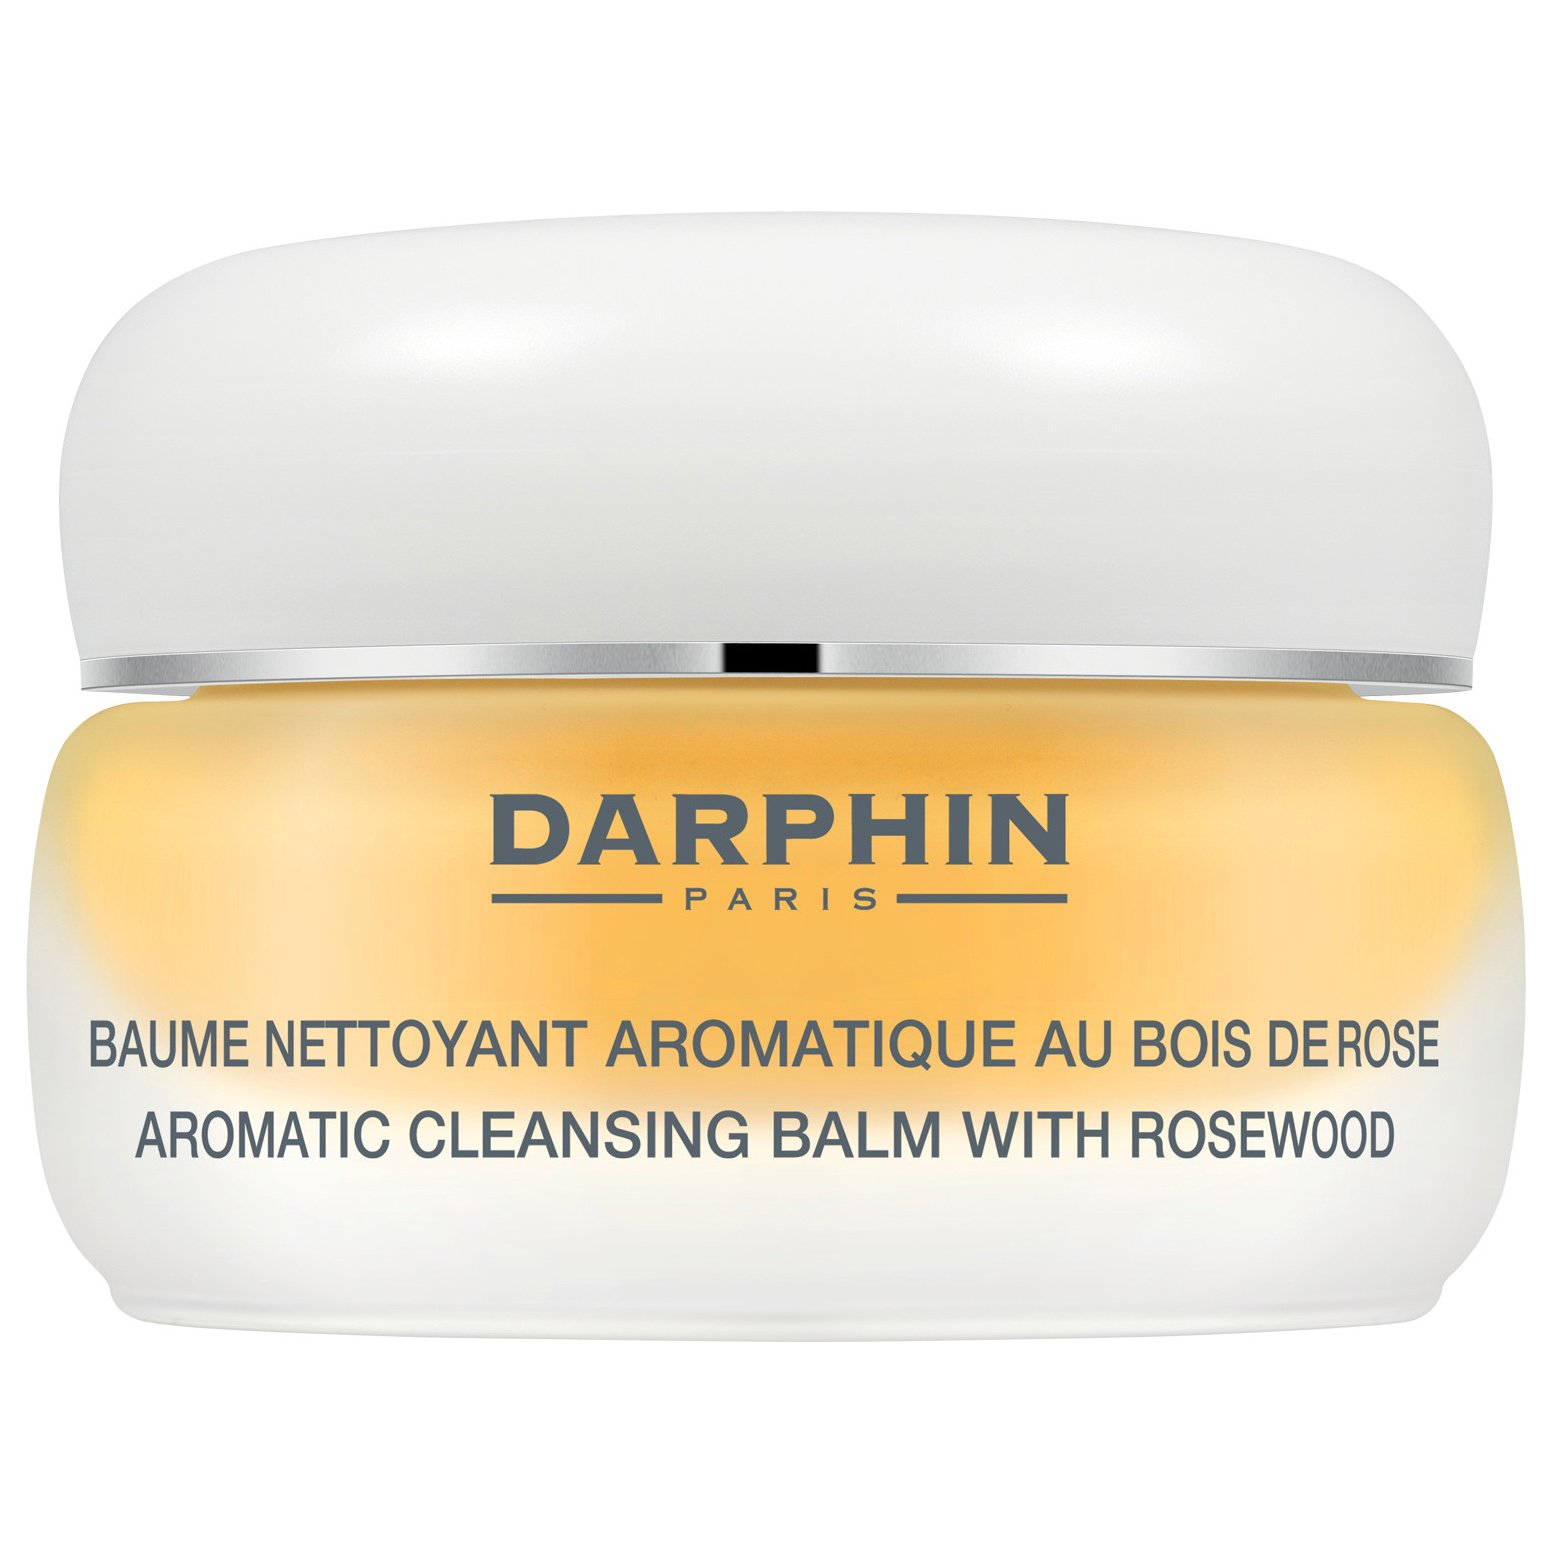 Darphin Aromatic Cleansing Balm with Rosewood Πλούσιο Πολυτελές Balm 40ml